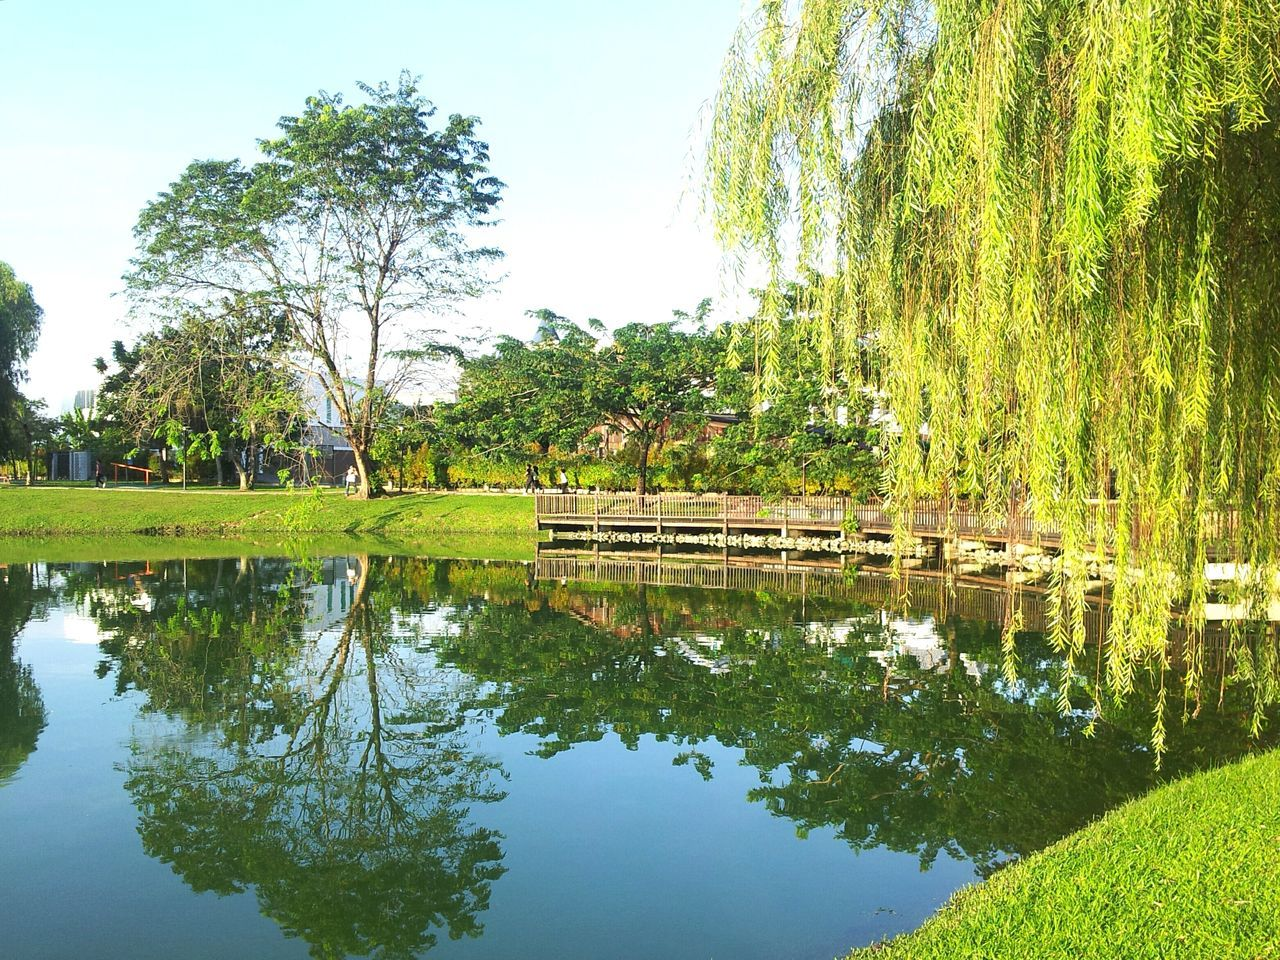 reflection, tree, water, day, tranquil scene, growth, tranquility, nature, outdoors, beauty in nature, green color, standing water, lake, no people, grass, waterfront, scenics, sky, built structure, architecture